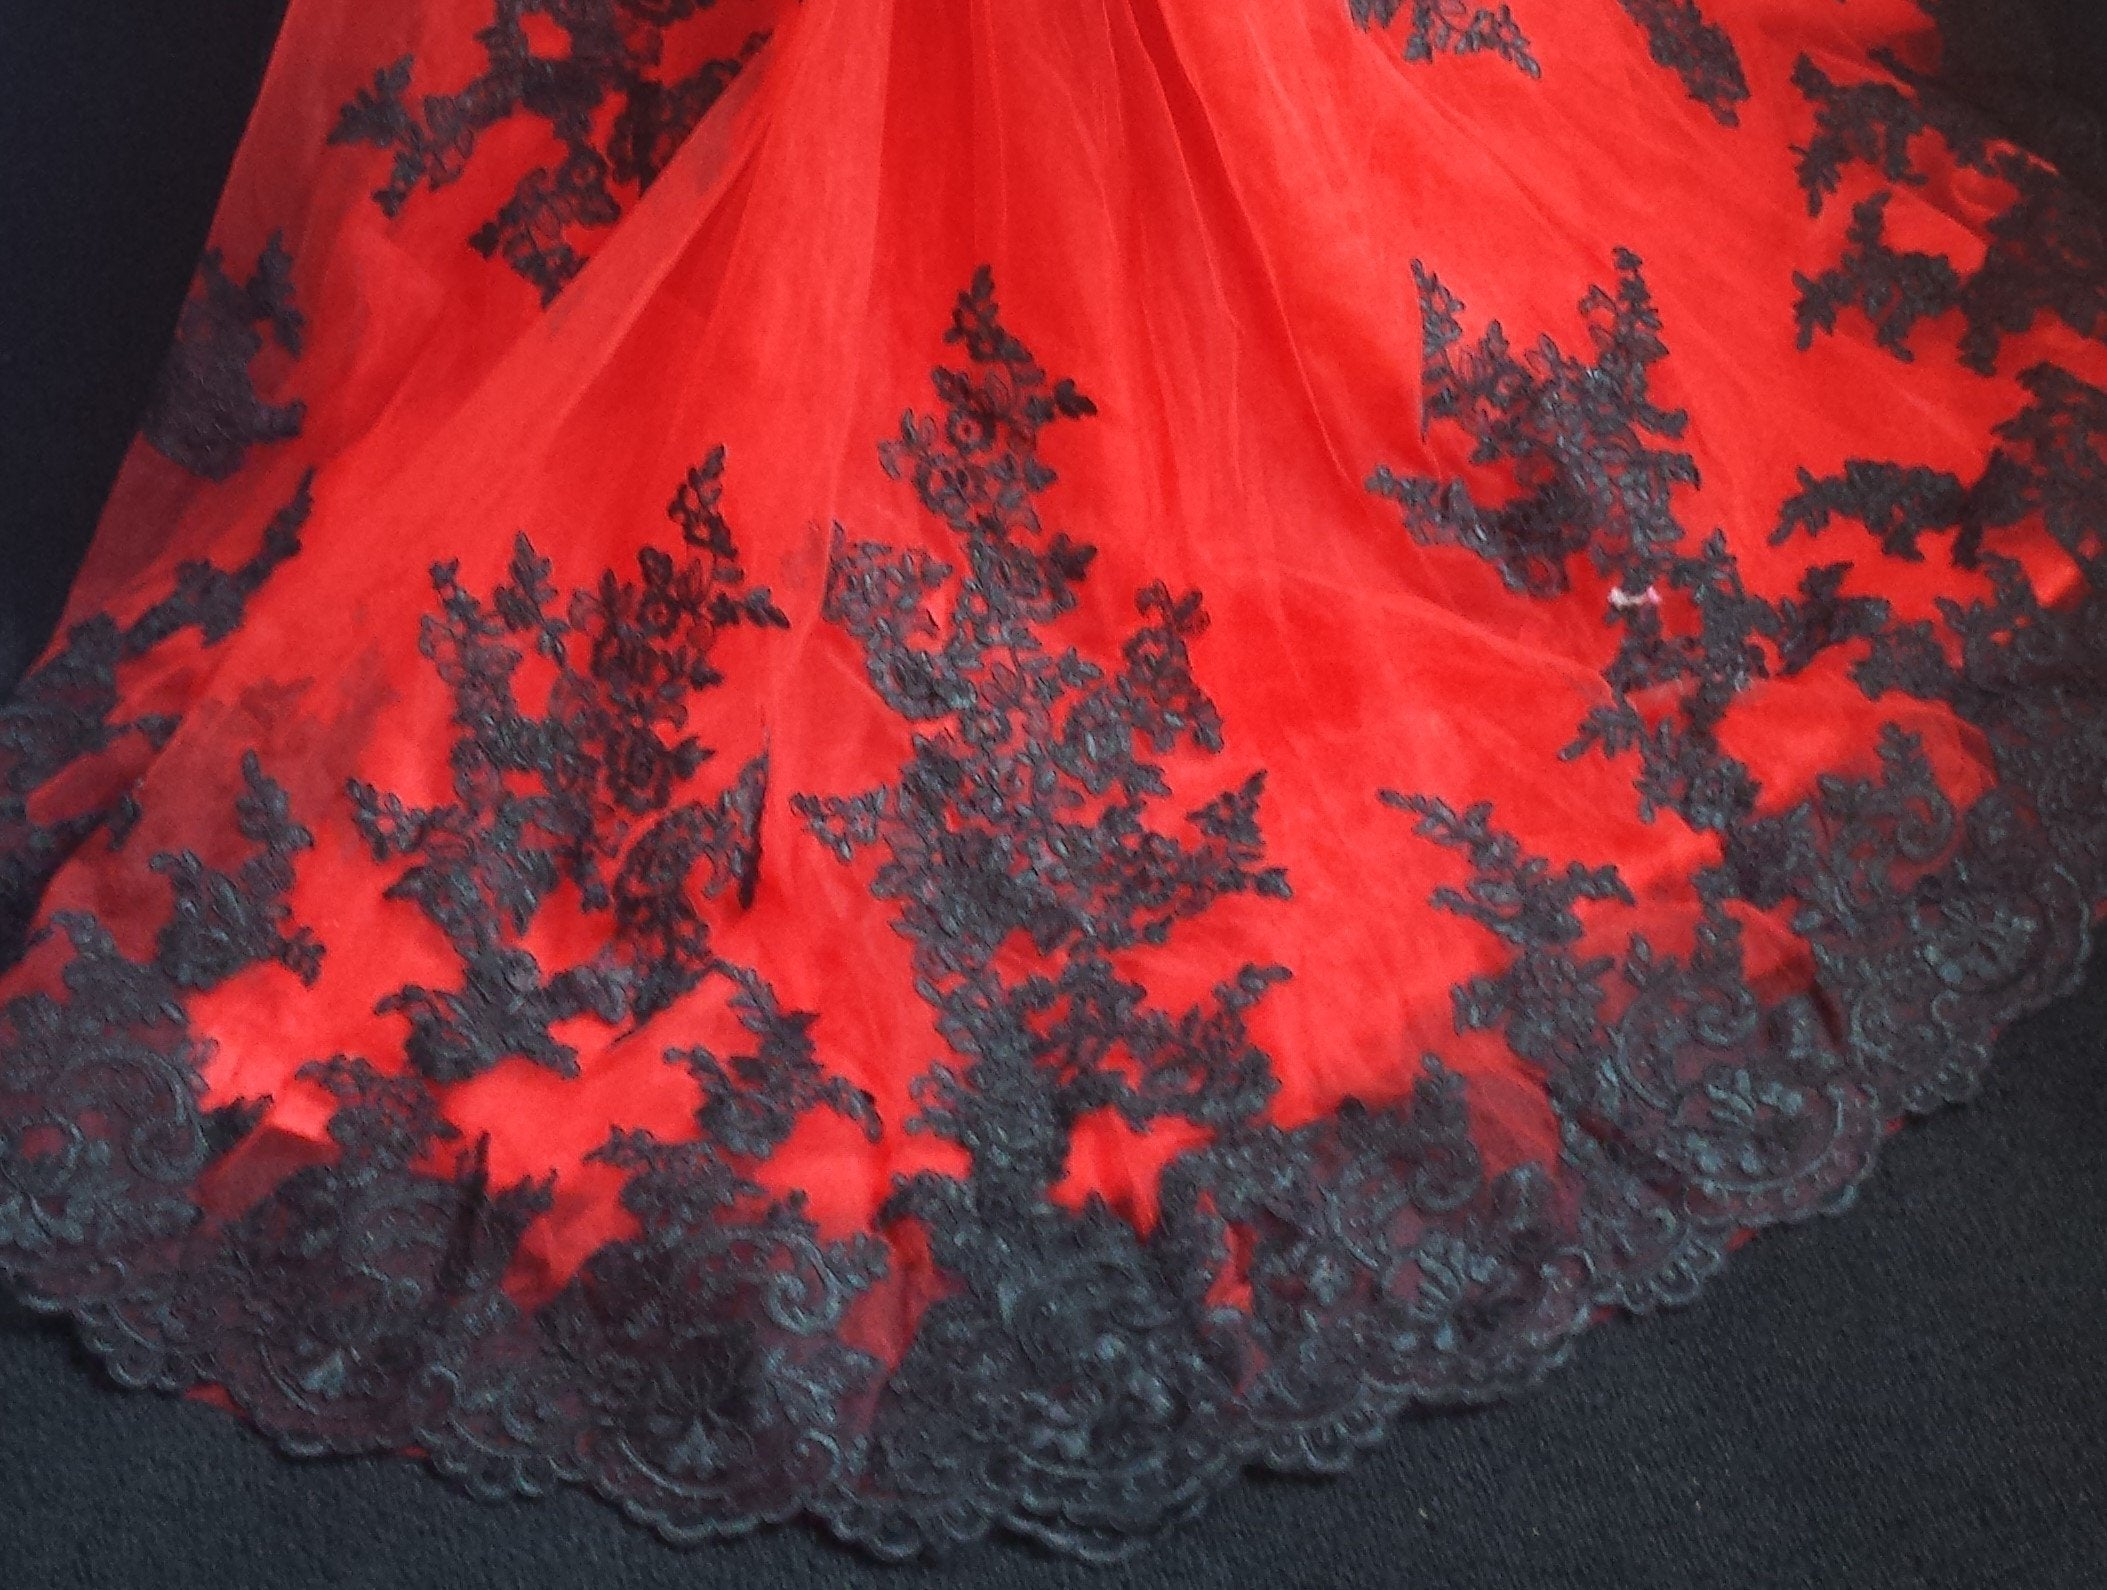 Black and Red Corset Applique Dress